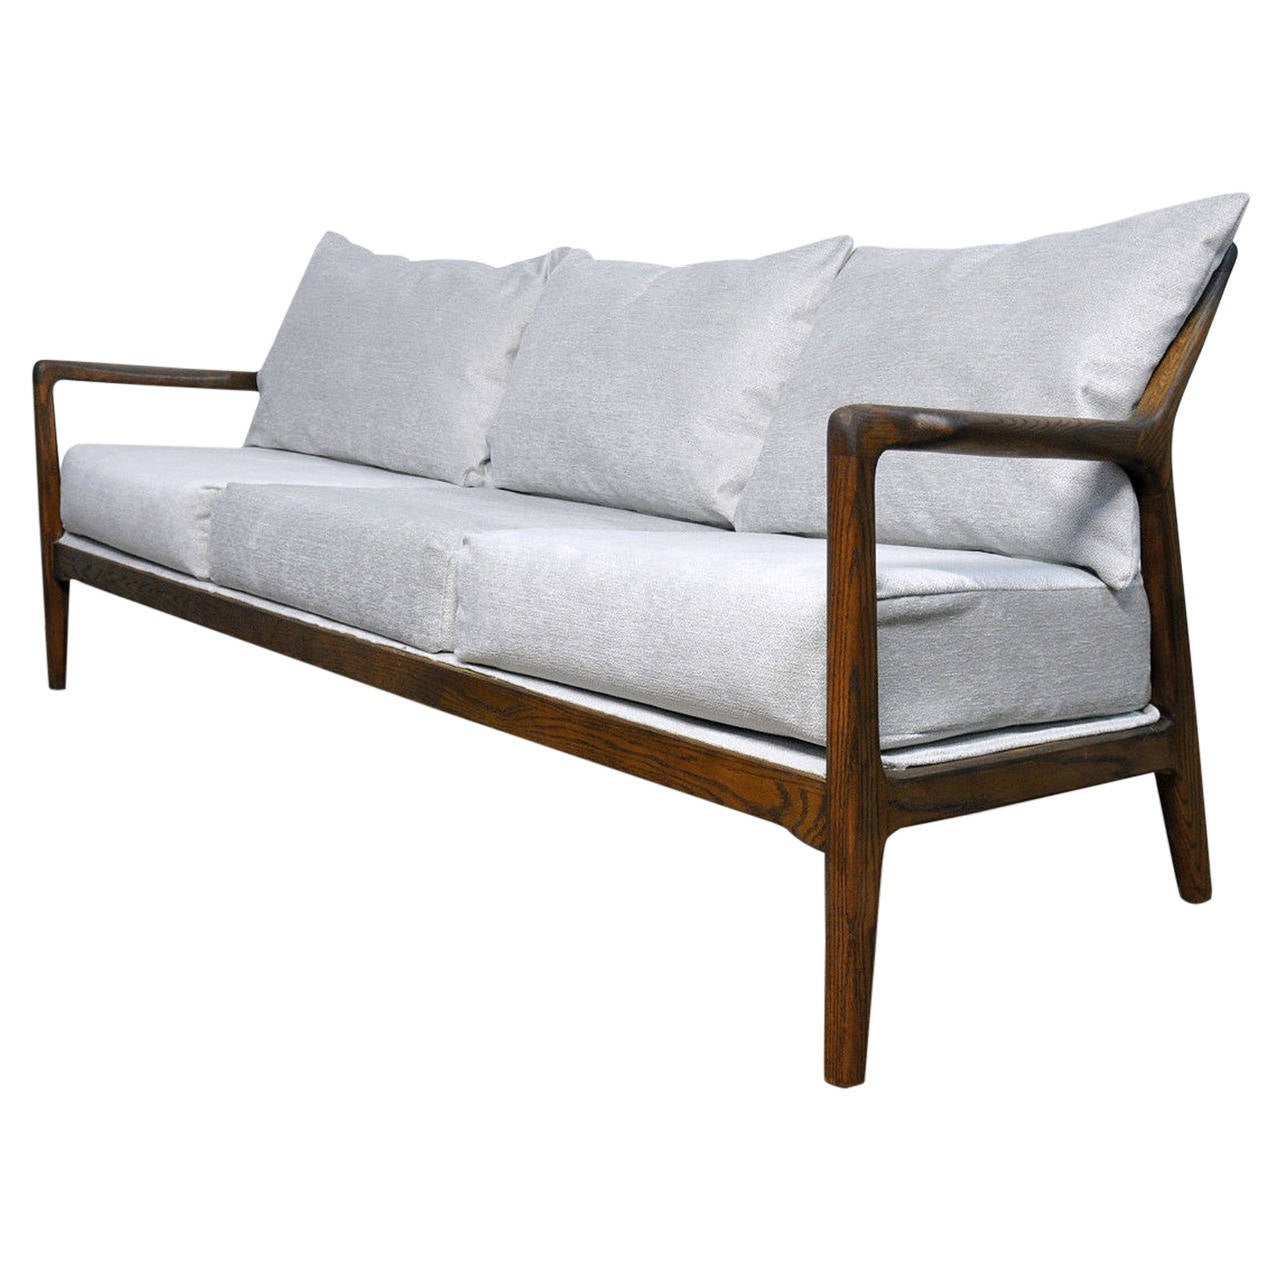 Mid century spindle back sofa by jack van der molen for Furniture jack